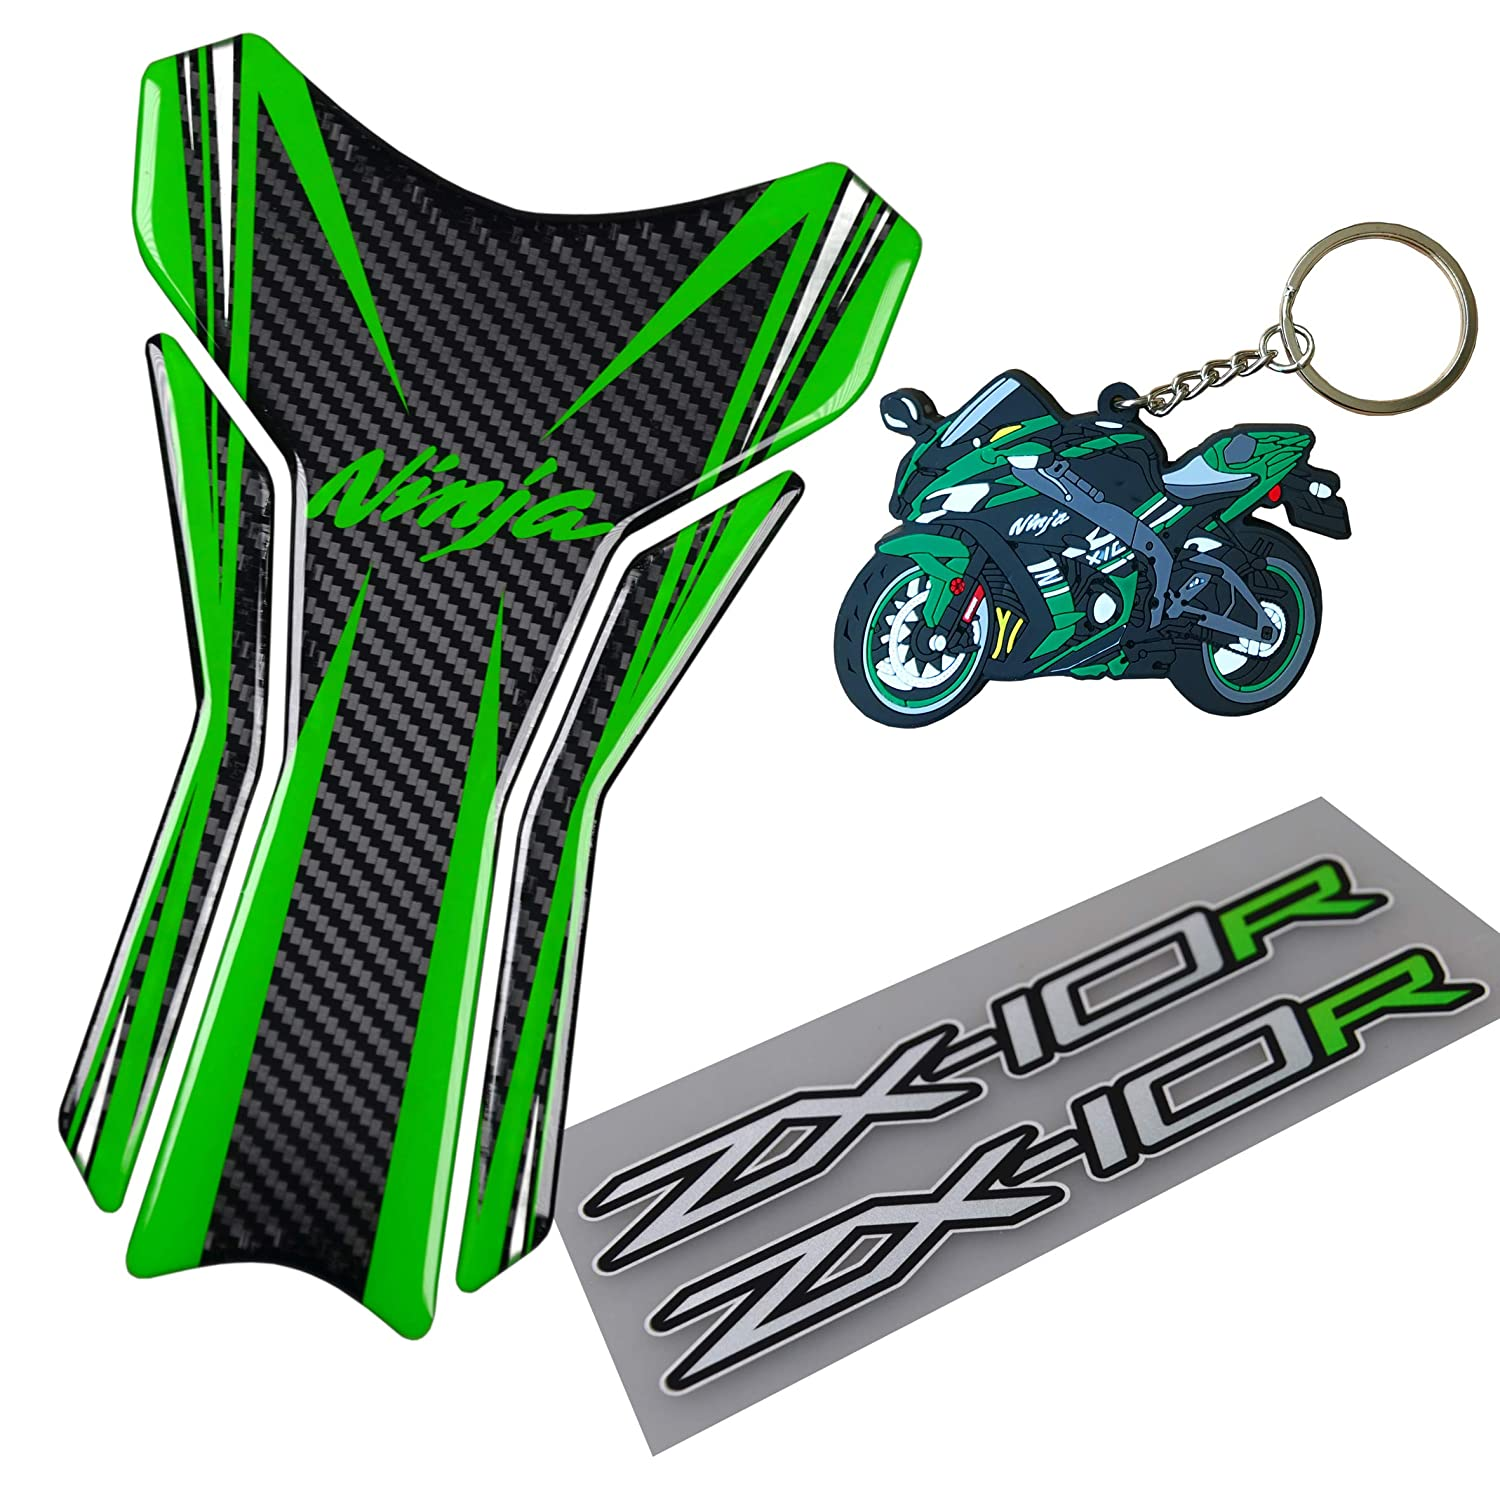 PSLER Motorcycle Reflective Stickers Decoration Decals Fuel Tank Stickers for ZX-3R Green